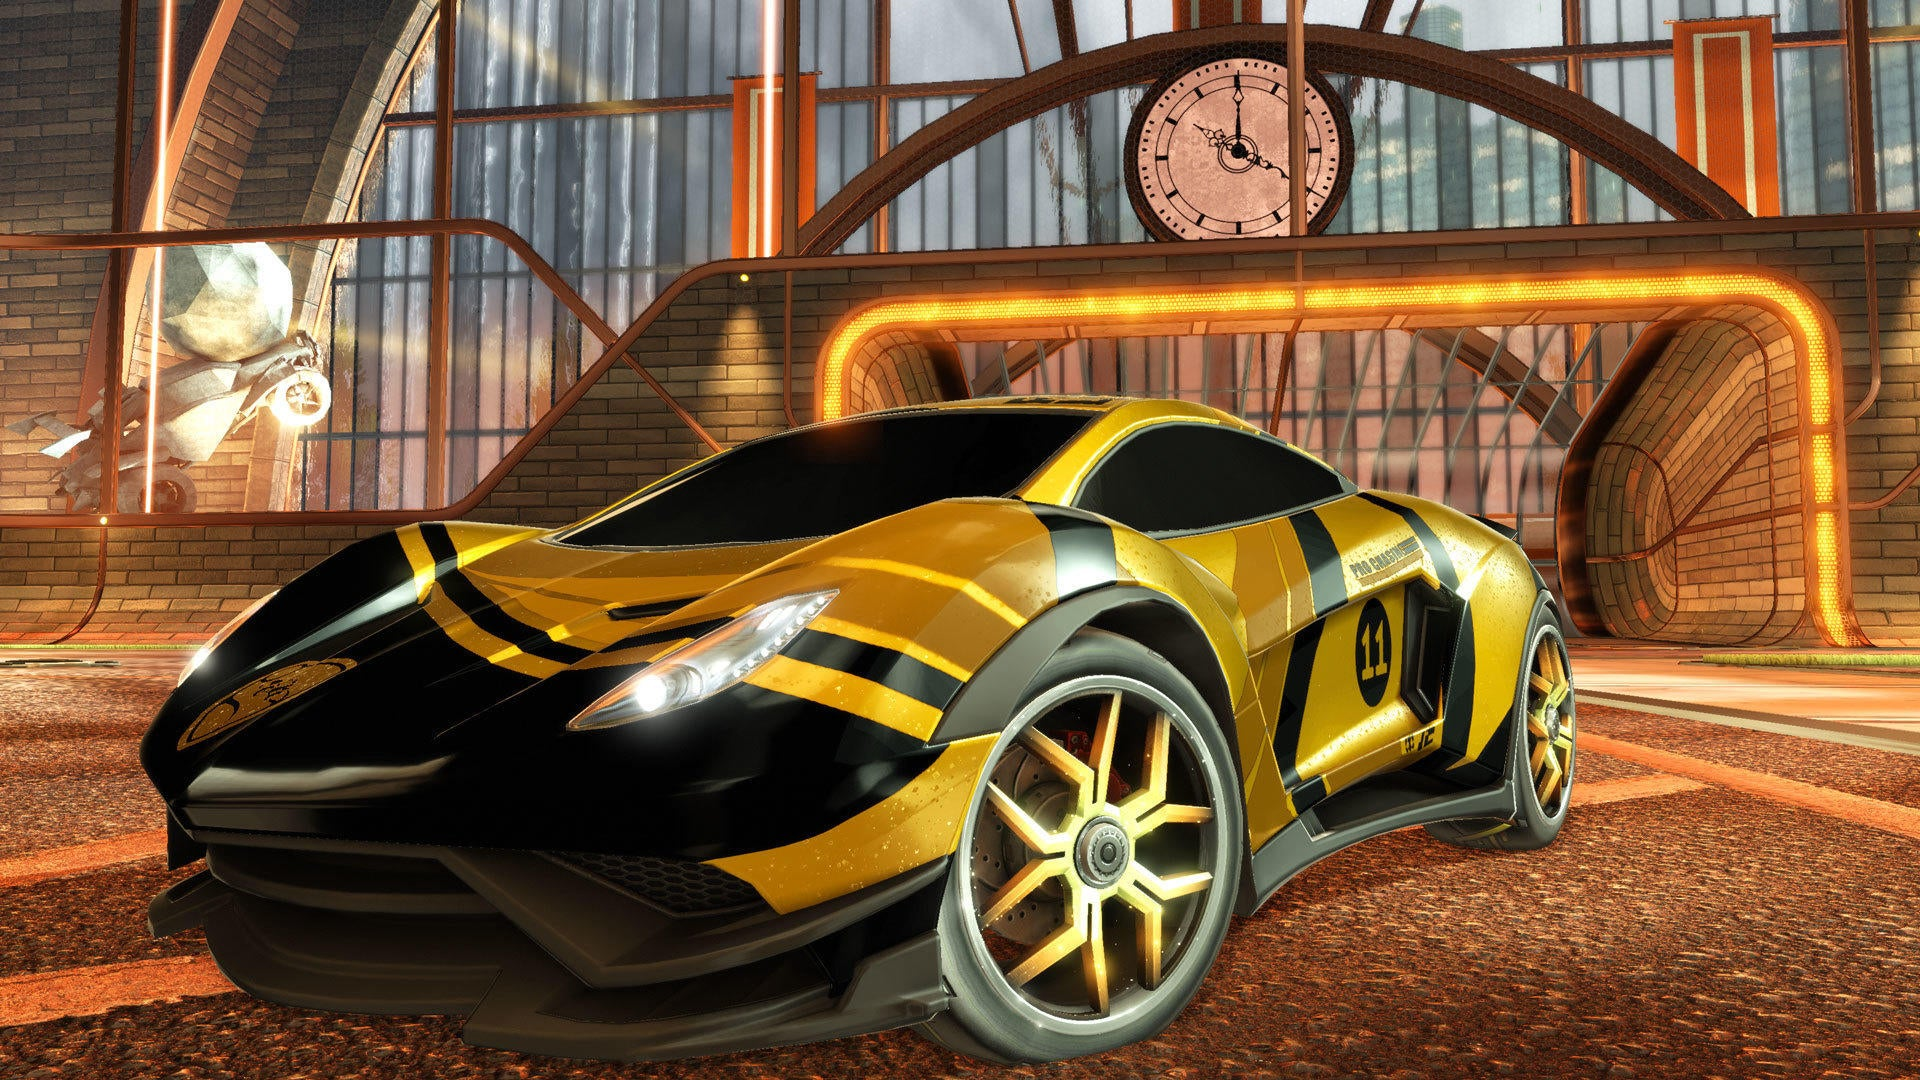 Exclusive In-Game Item Coming for RLCS Attendees Image